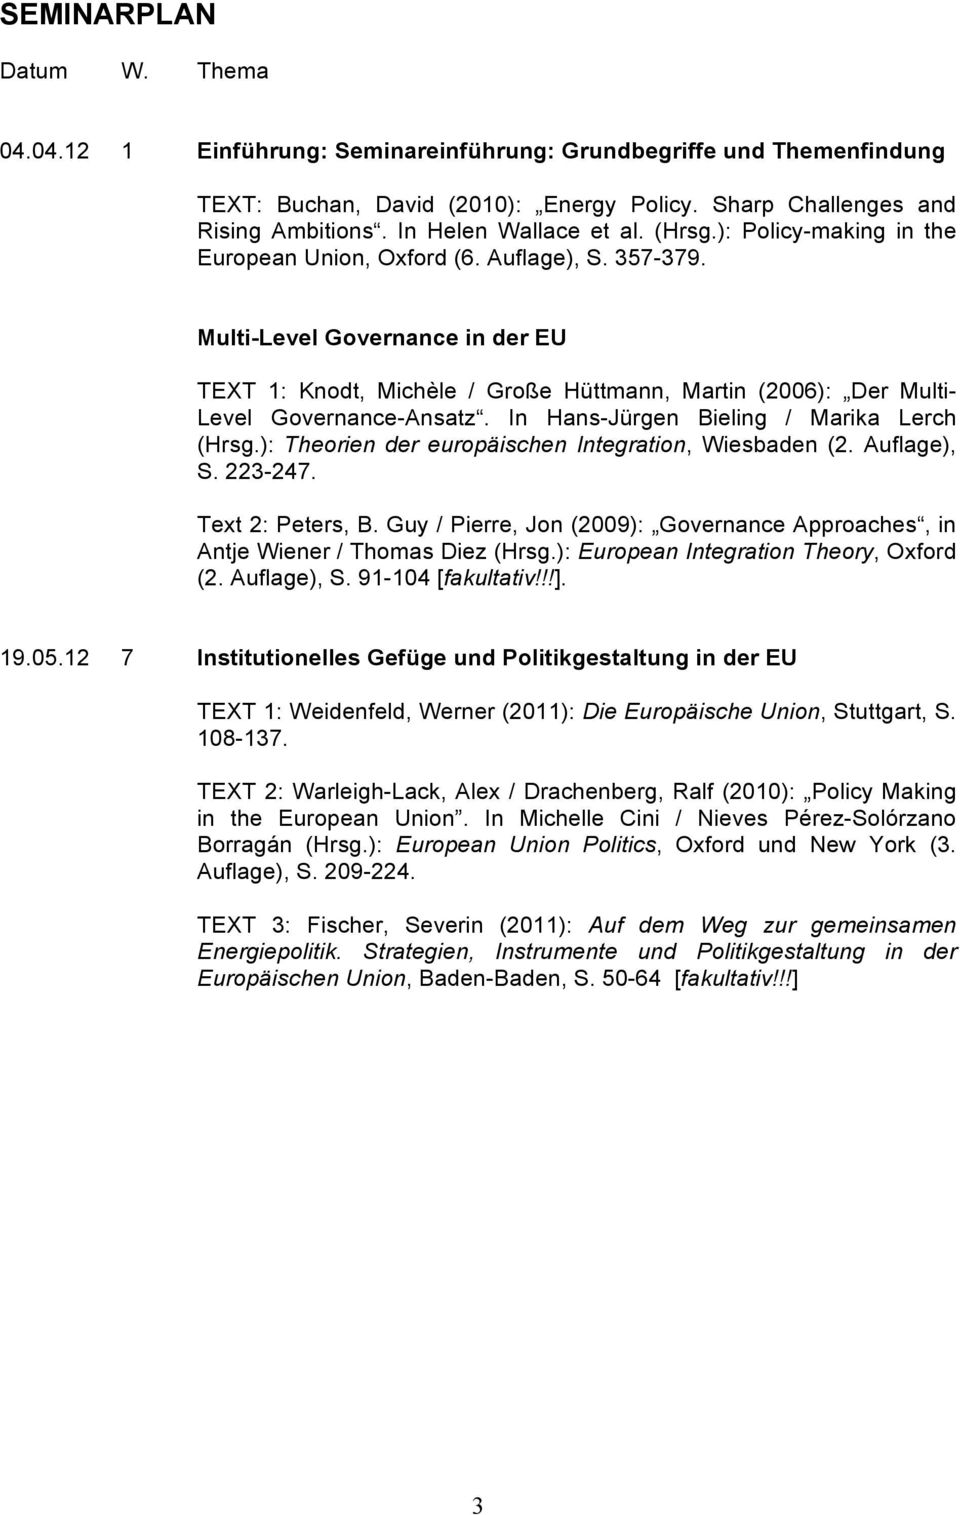 Multi-Level Governance in der EU TEXT 1: Knodt, Michèle / Große Hüttmann, Martin (2006): Der Multi- Level Governance-Ansatz. In Hans-Jürgen Bieling / Marika Lerch (Hrsg.